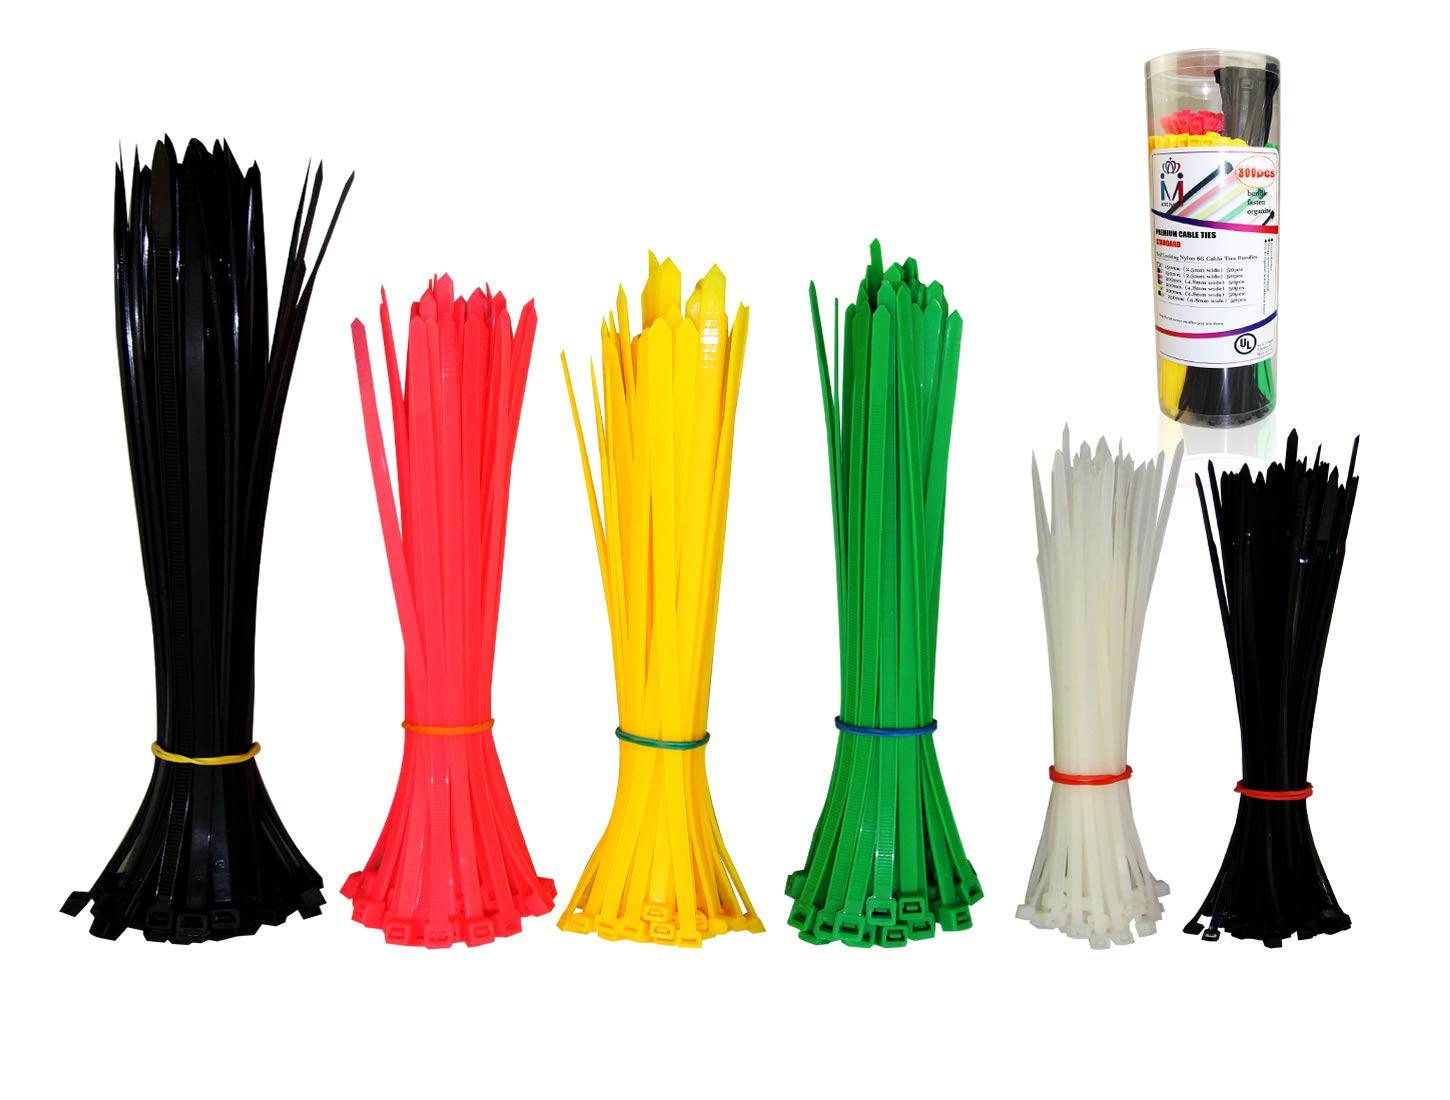 Premium Cable Ties 300 Pcs, Heavy Duty Self-Locking Zip Ties Assorted Sizes and Colors, 6 Inch 8 Inch 10 Inch, White Black Yellow Green Red, by HAODE FASHION